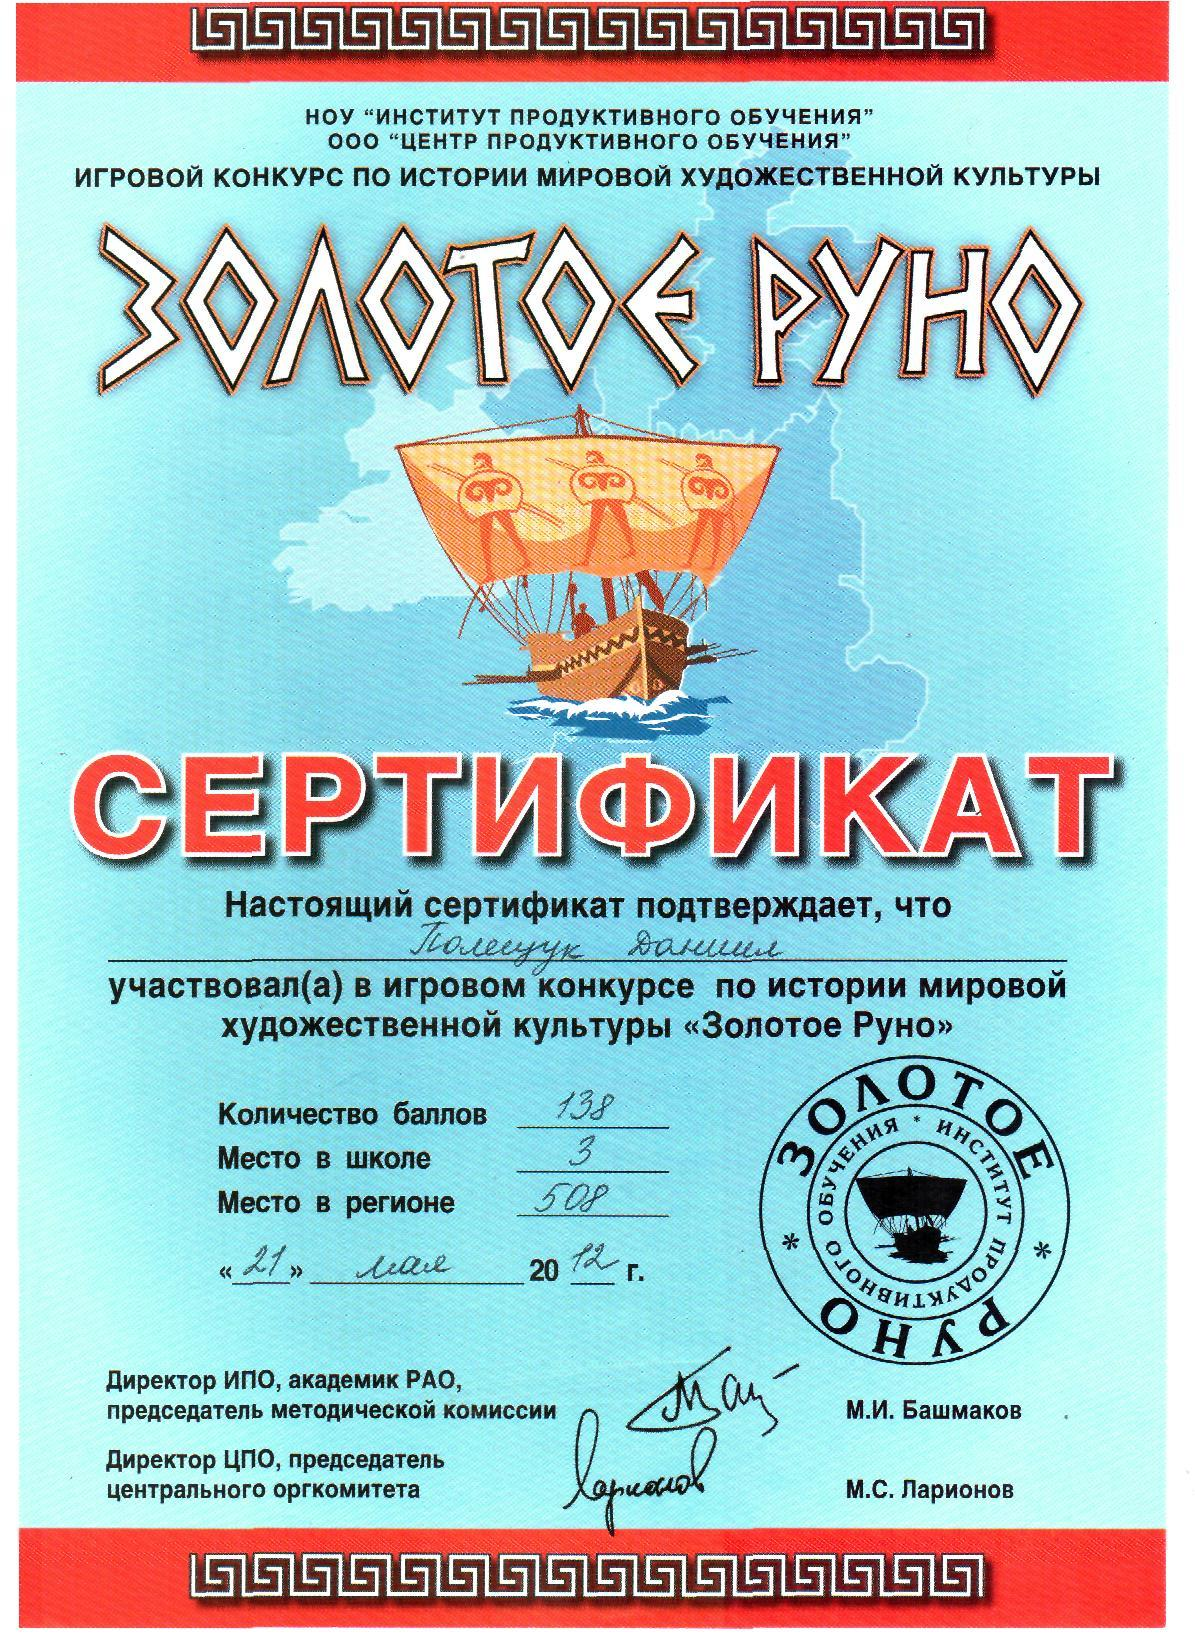 C:\Documents and Settings\User.USER-A1DBA845B9\Мои документы\Файлы Mail.Ru Агента\sergei_752@mail.ru\helios84@mail.ru\ков0005.jpg